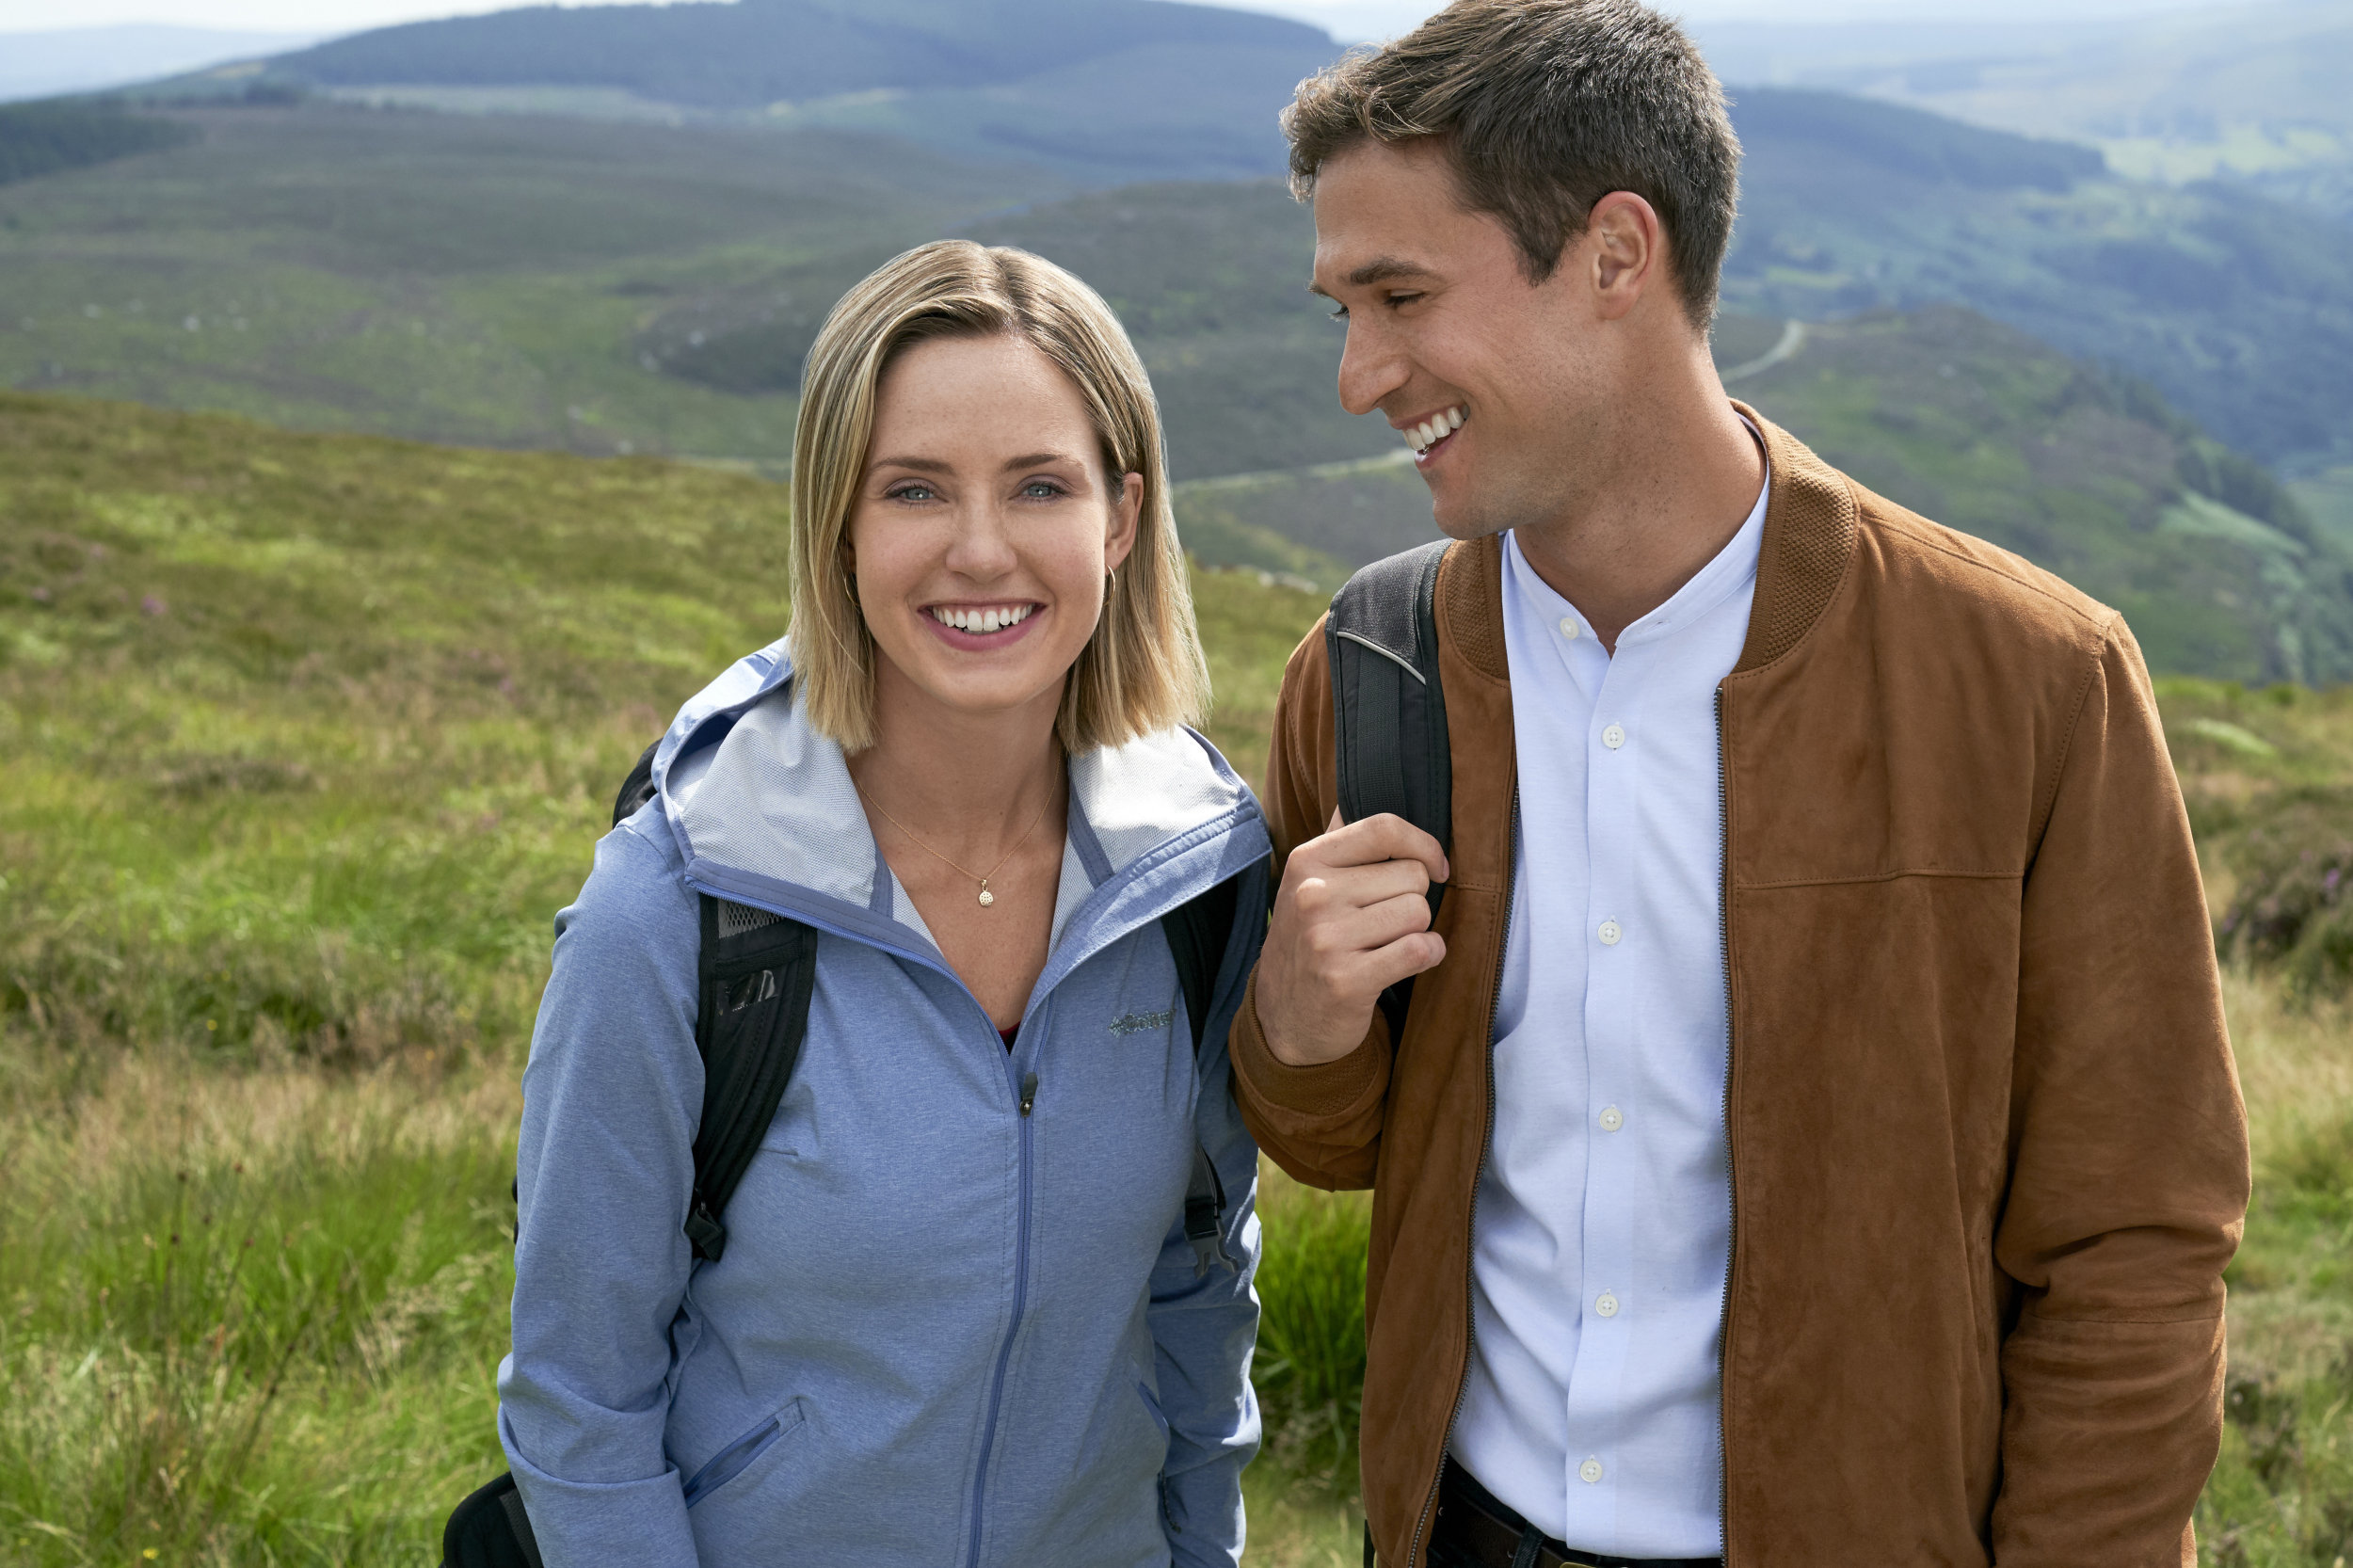 Movies - Romance, Comedy, Family | Hallmark Channel